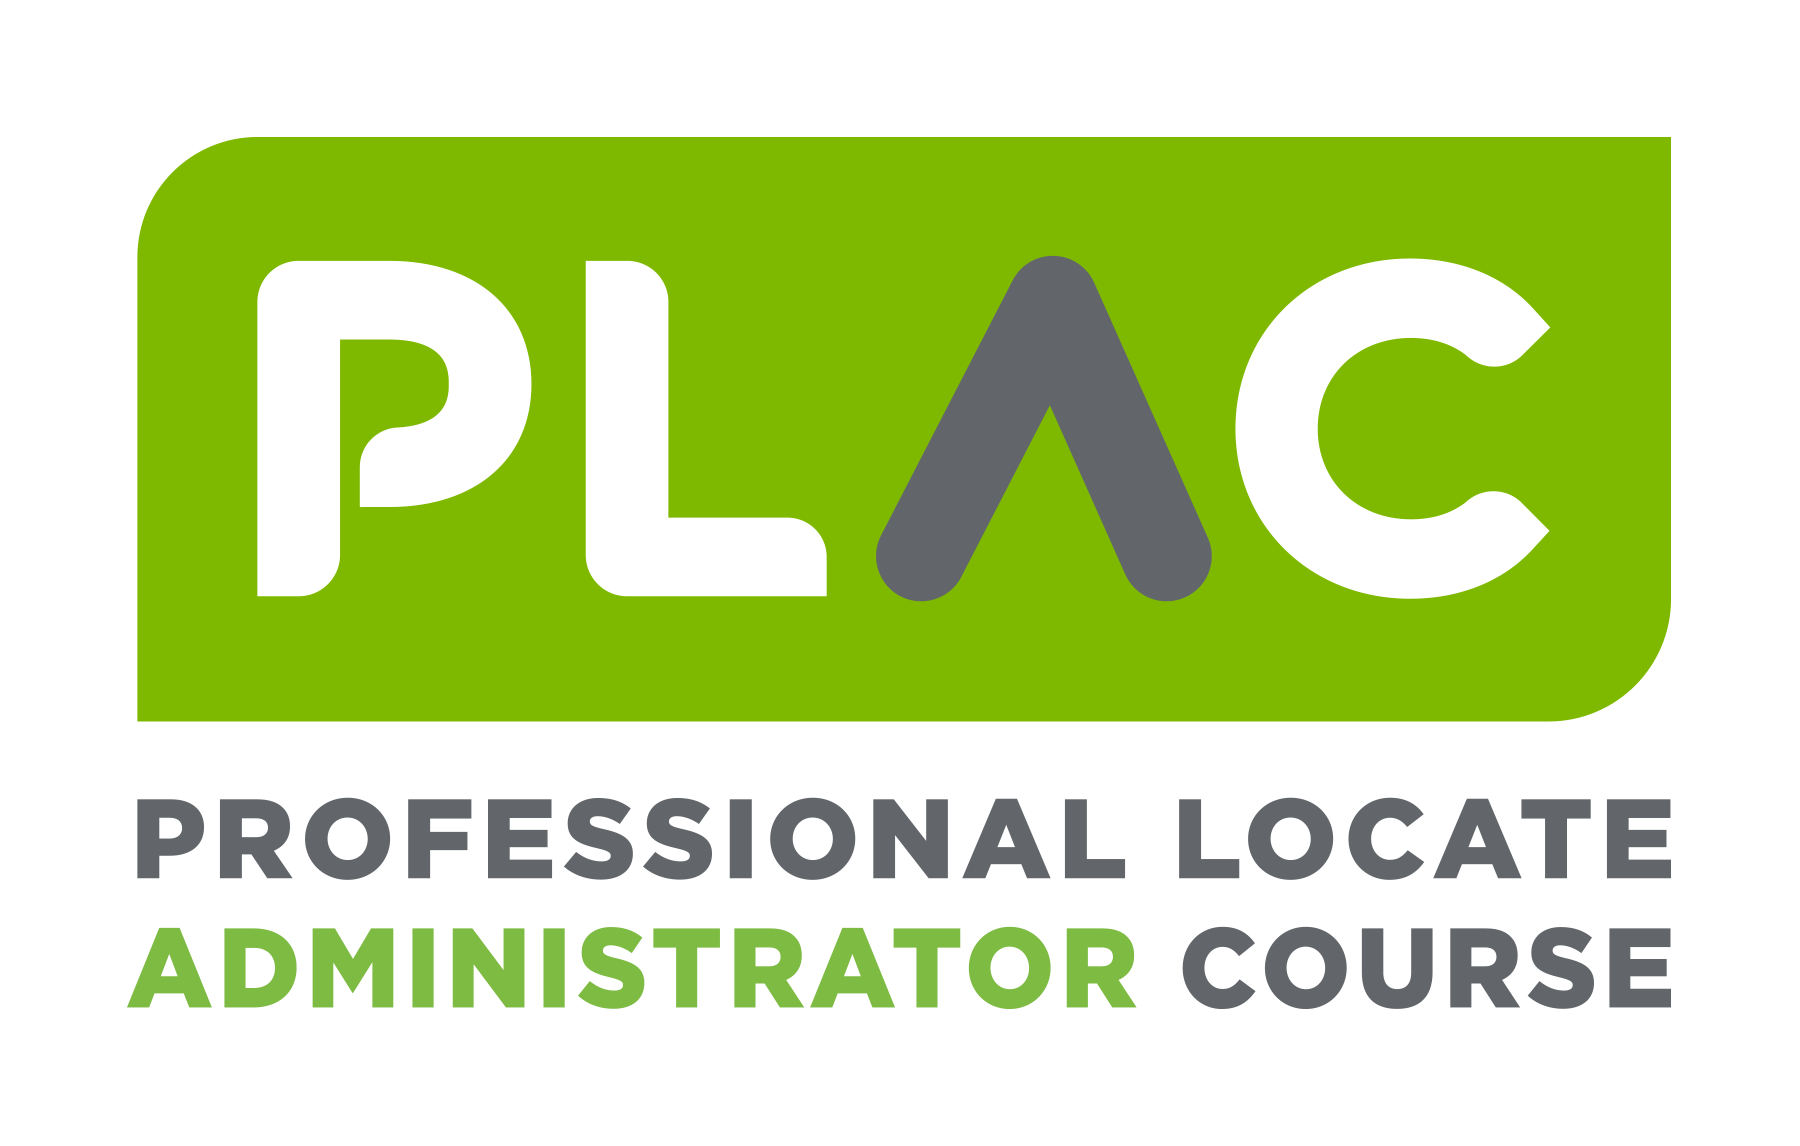 professional locate administrator course (PLAC)